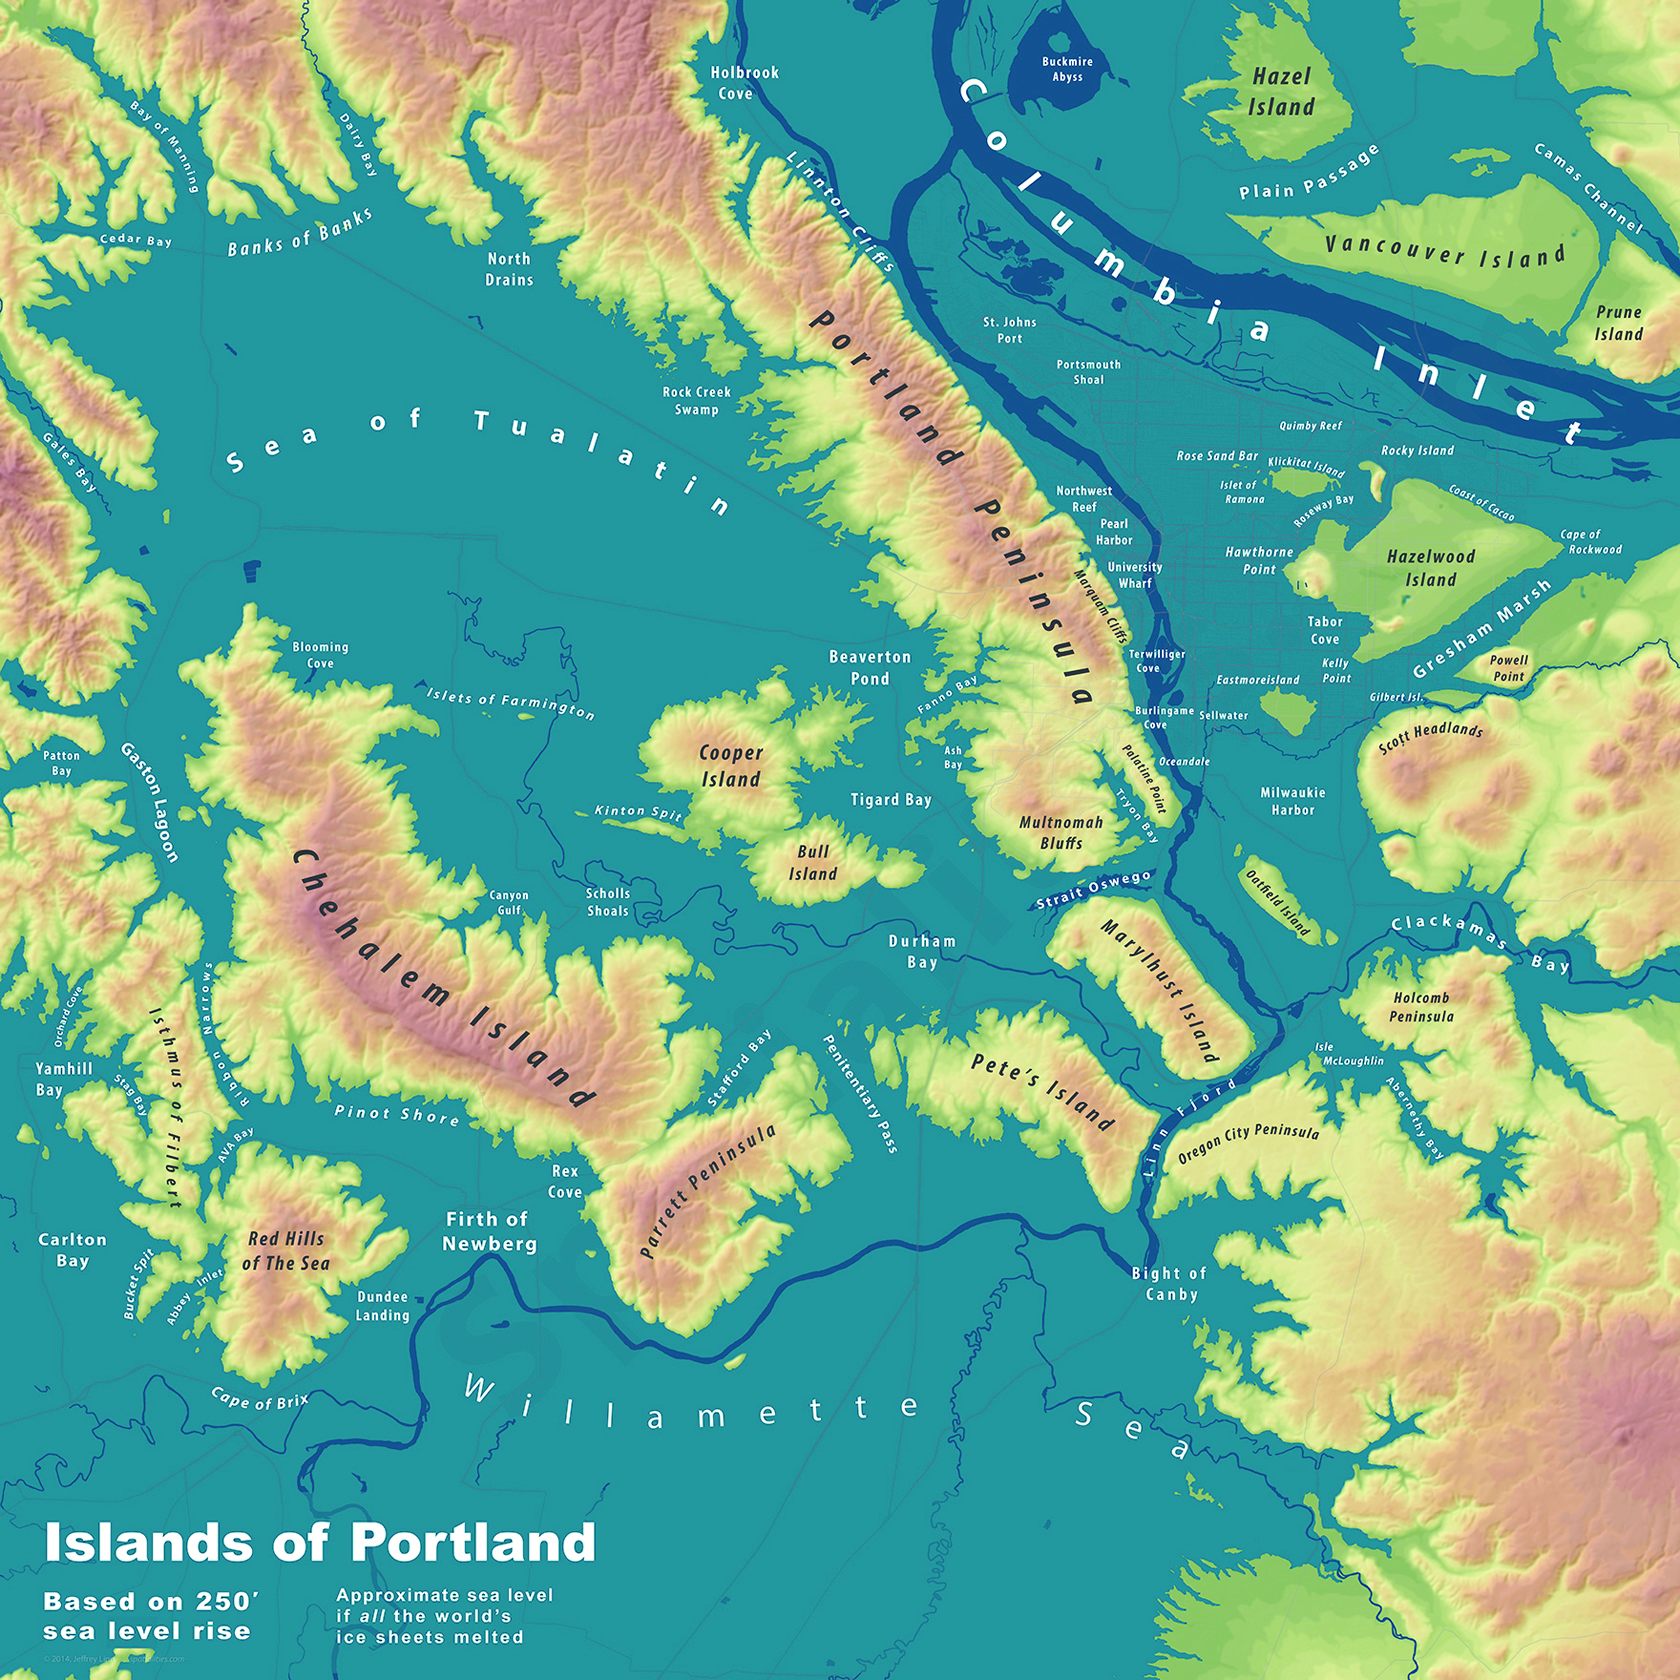 Pamplin Media Group A Sneak Peek At The Islands Of Portland - Global warming sea level rise map